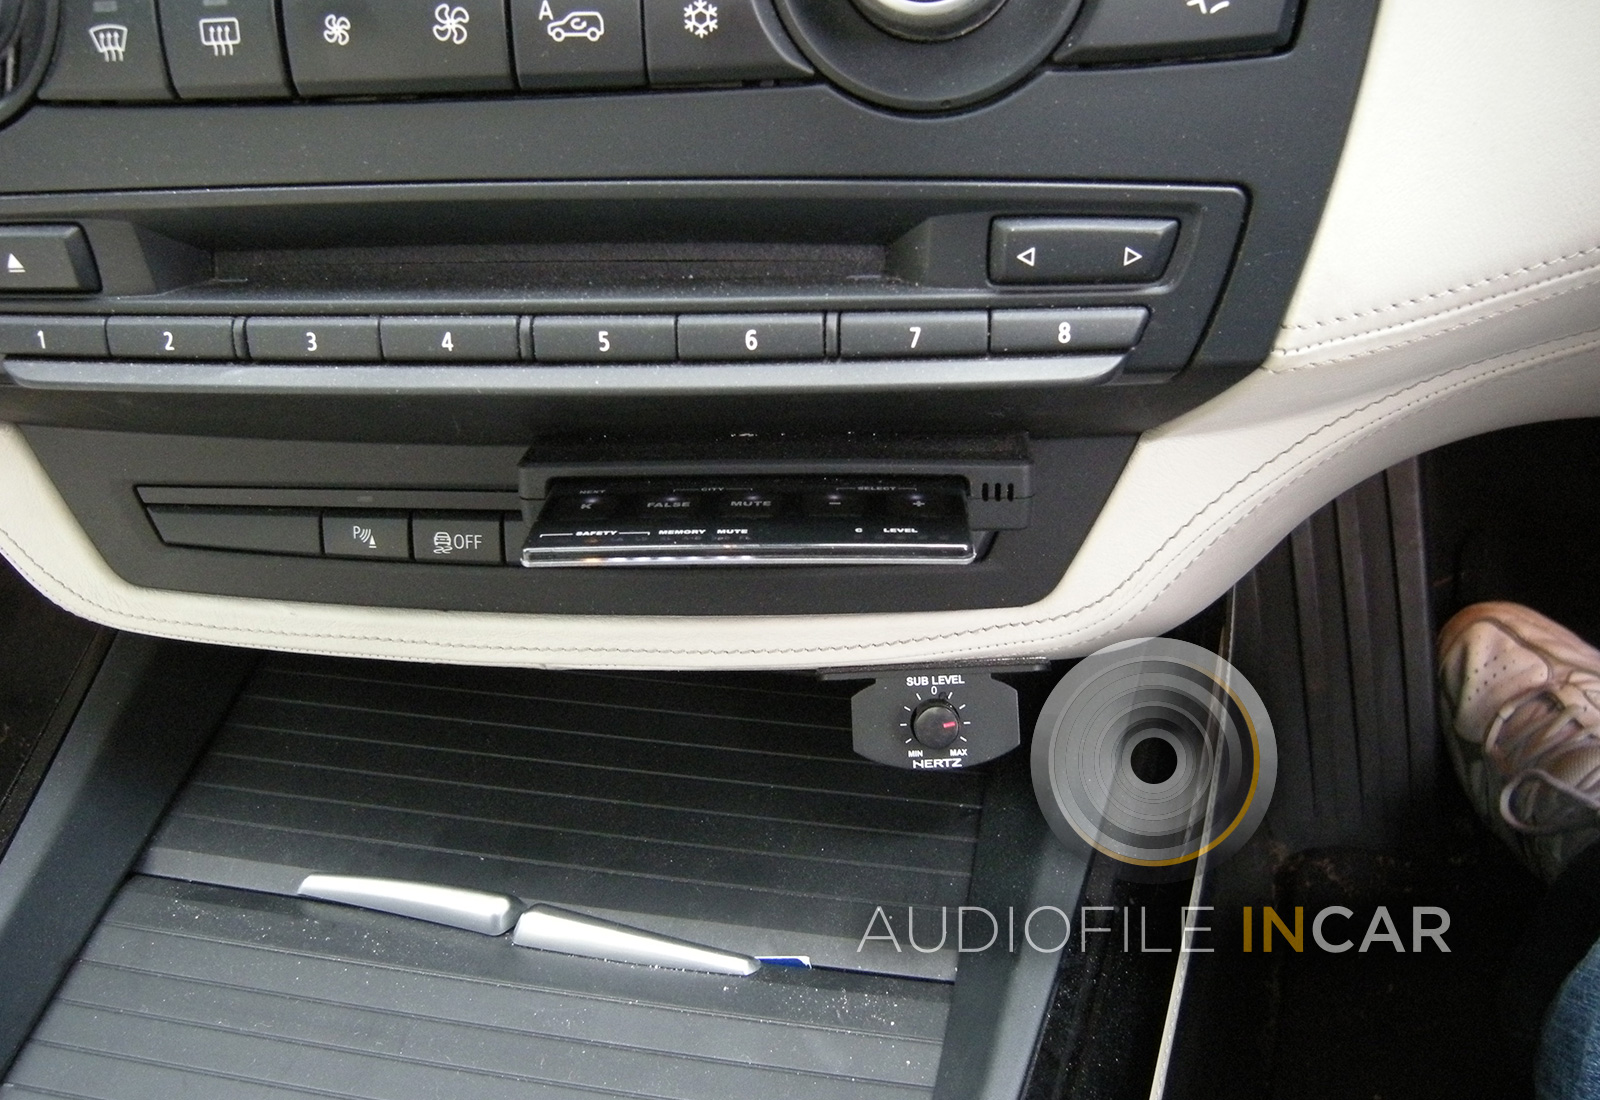 This shows a Stinger GPS Card custom fitted to a BMW X5,  The holder has been moulded into the dash panel and finished in the exact paint to match the interior.